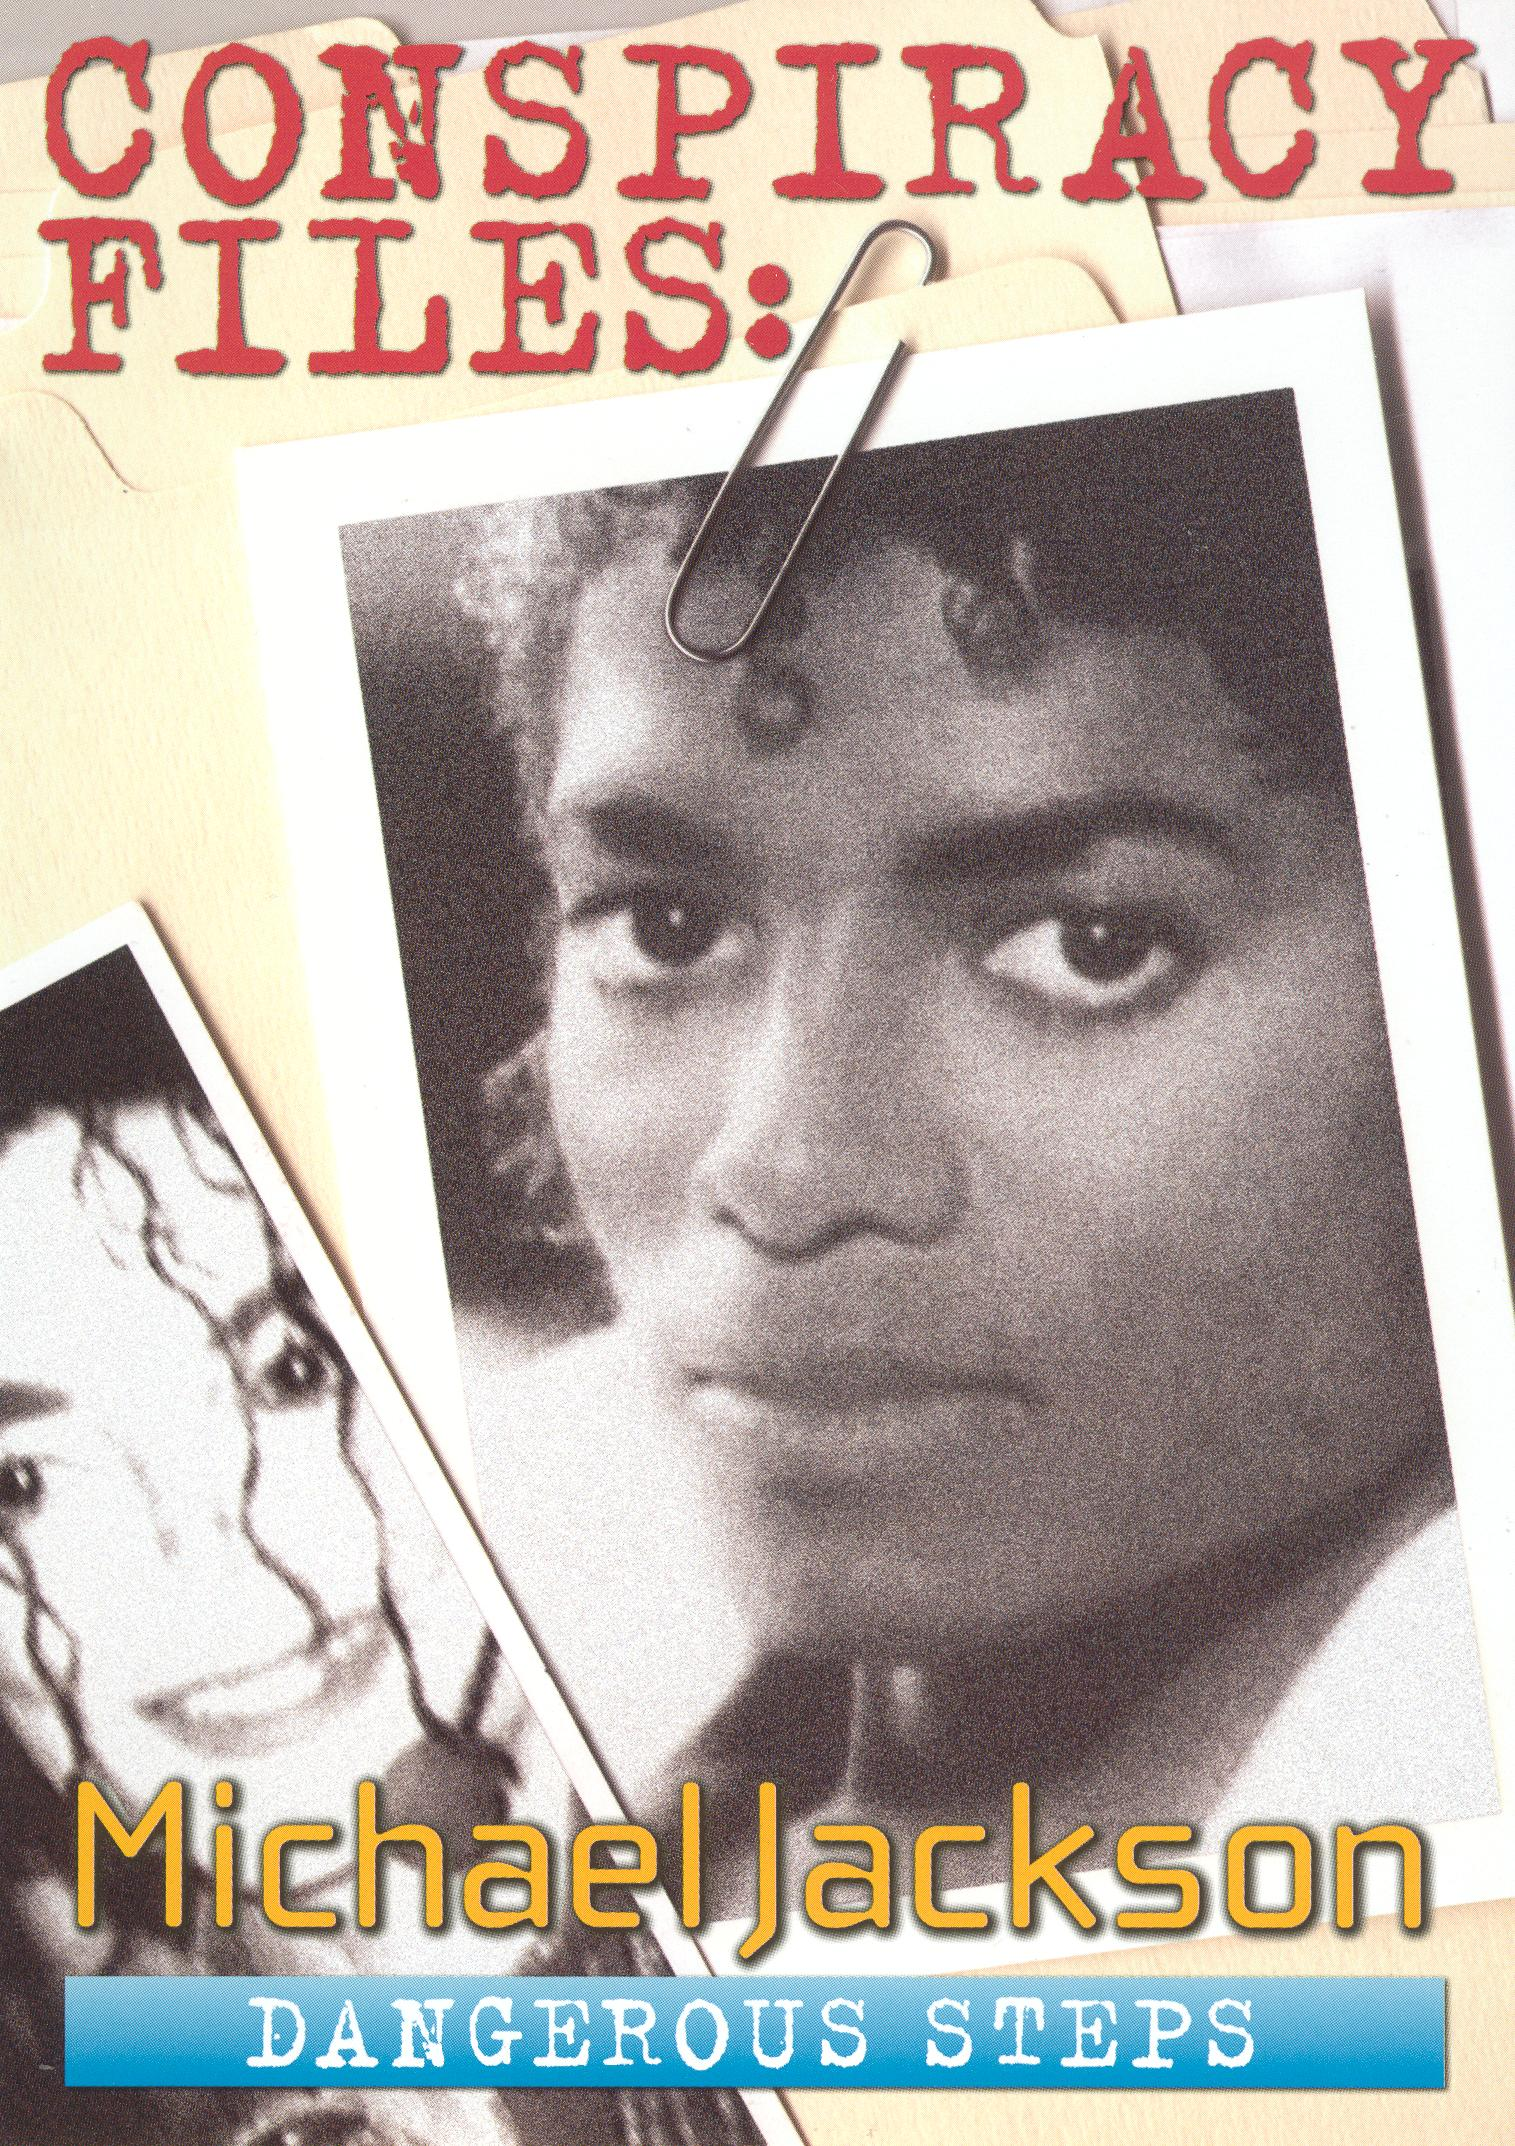 a review of michael jackson conspiracy Michael jackson and the limits of patient autonomy  it is trite that there are  many different ethical theories, such as virtue ethics, kantian  in summary,  patient autonomy does not extend to doctors acting unethically or breaking the  law at the.